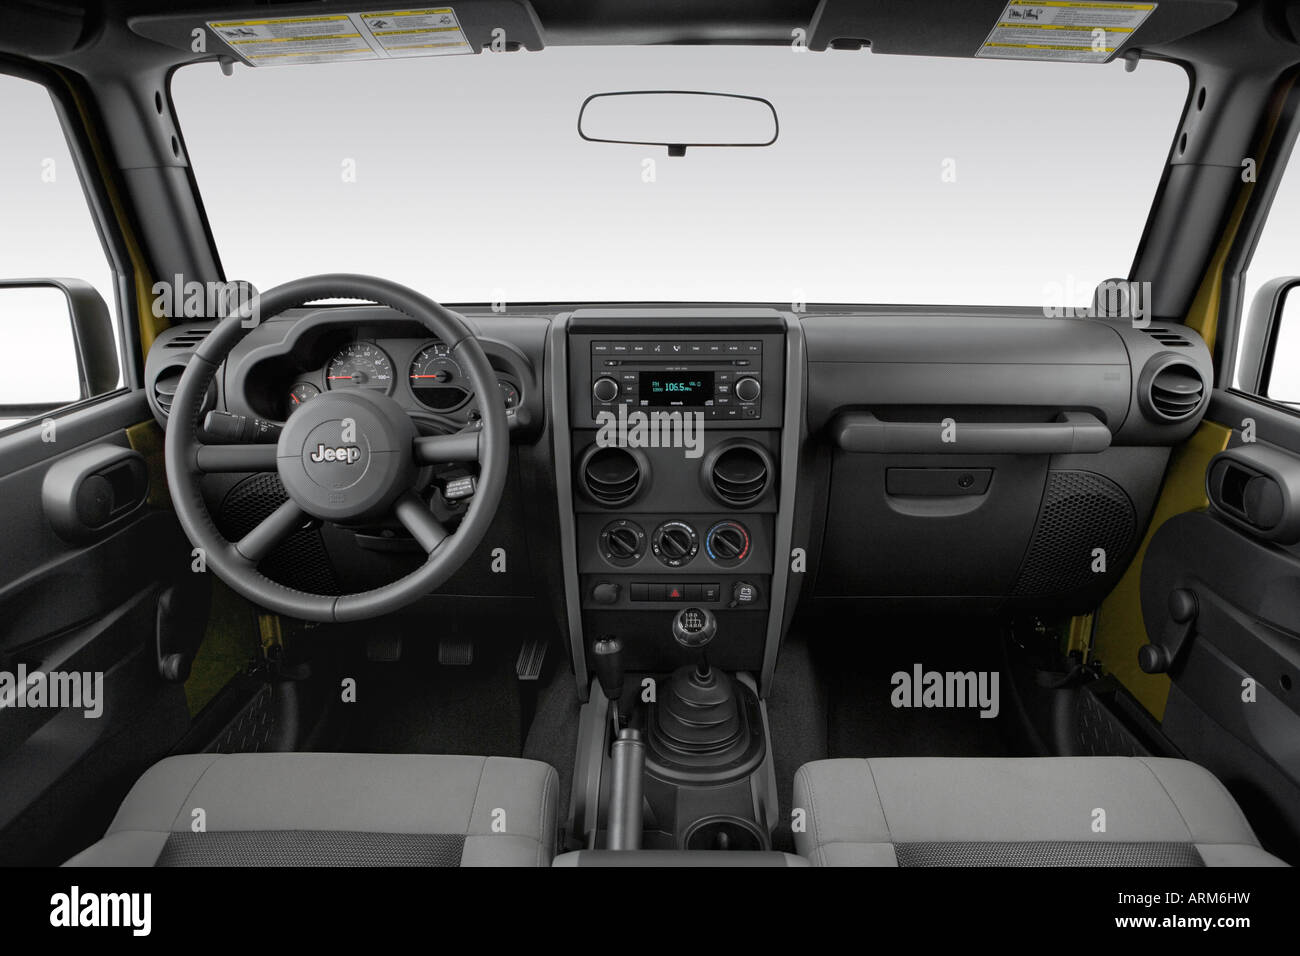 2008 jeep wrangler unlimited x in green - dashboard, center